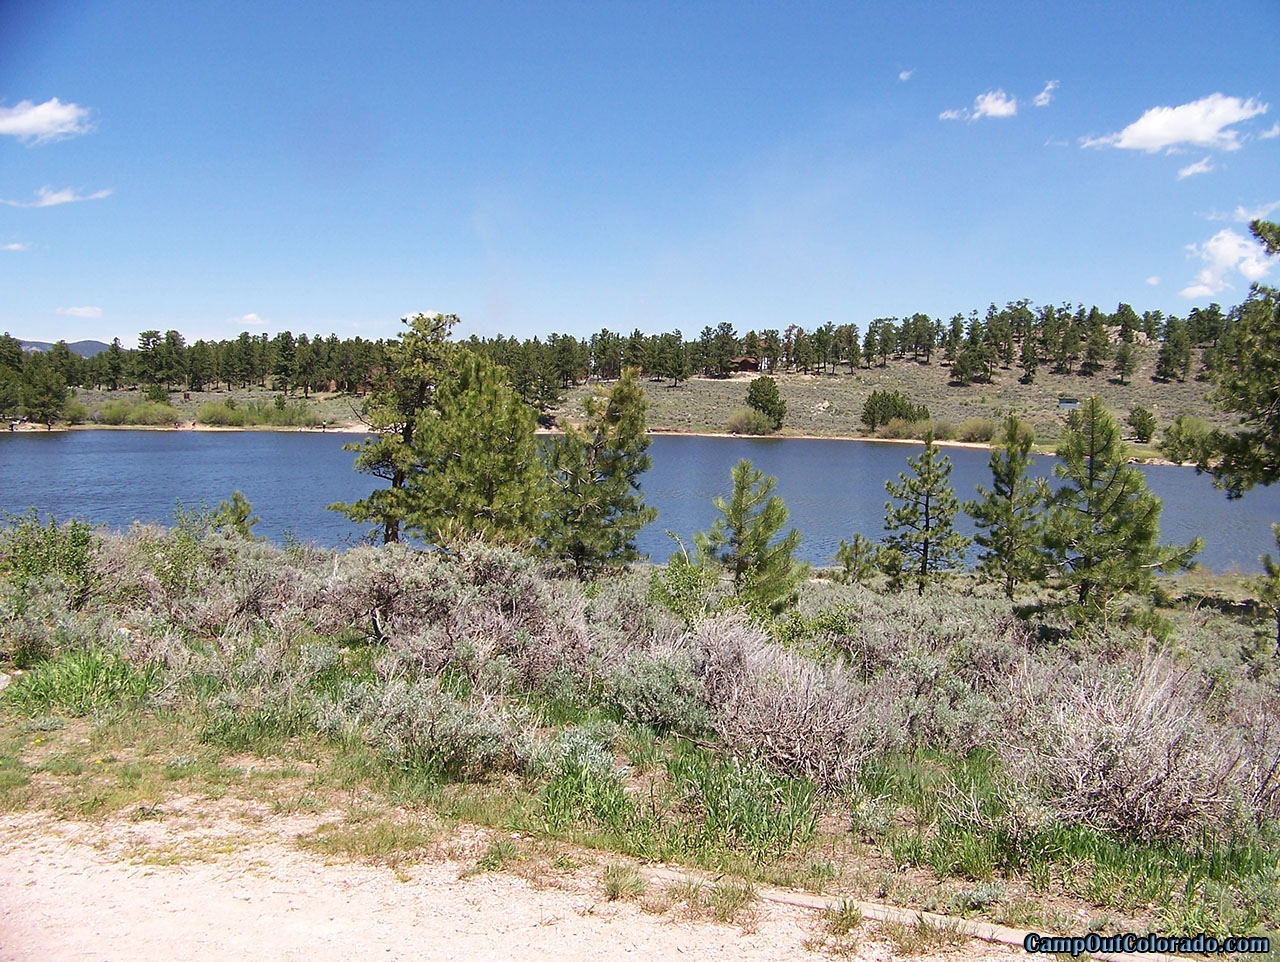 campoutcolorado-west-lake-view-of-west-lake